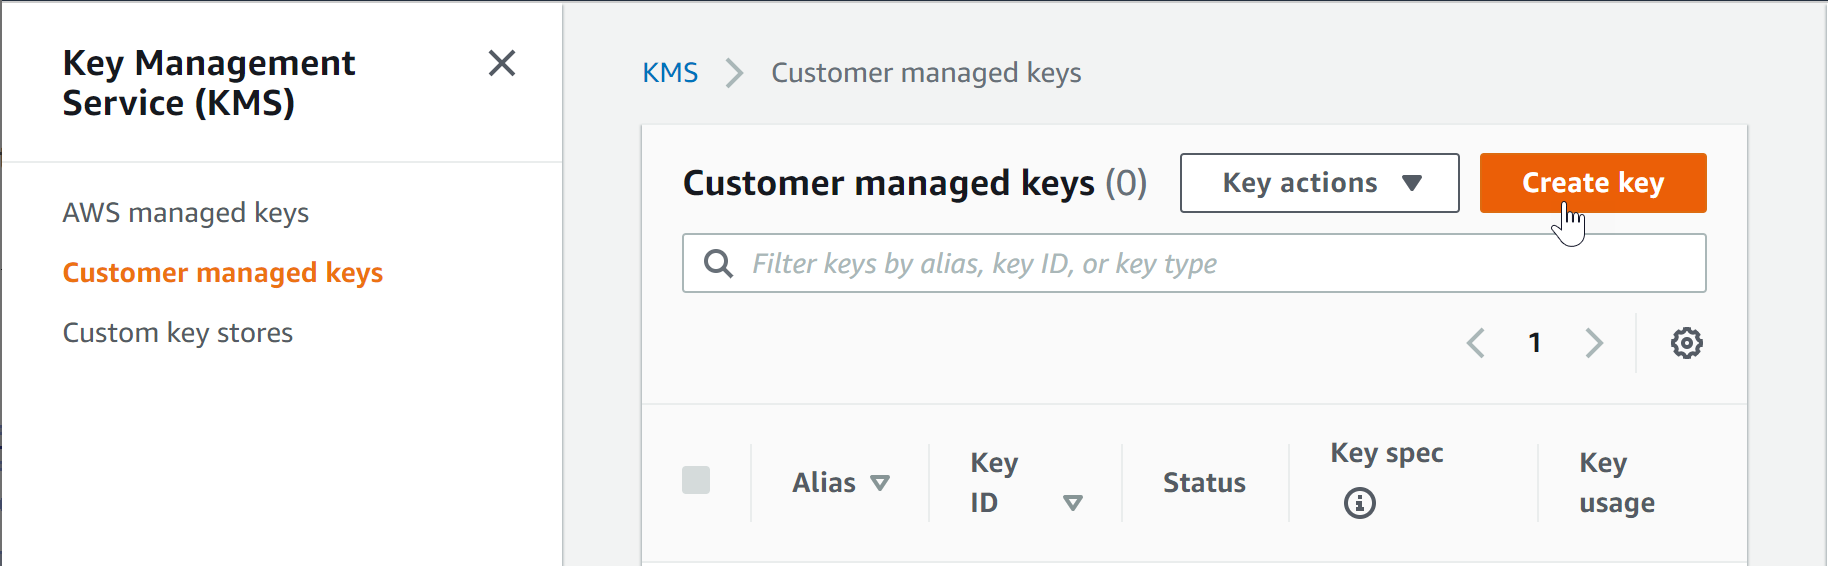 sqs-create-encrypted-key.png